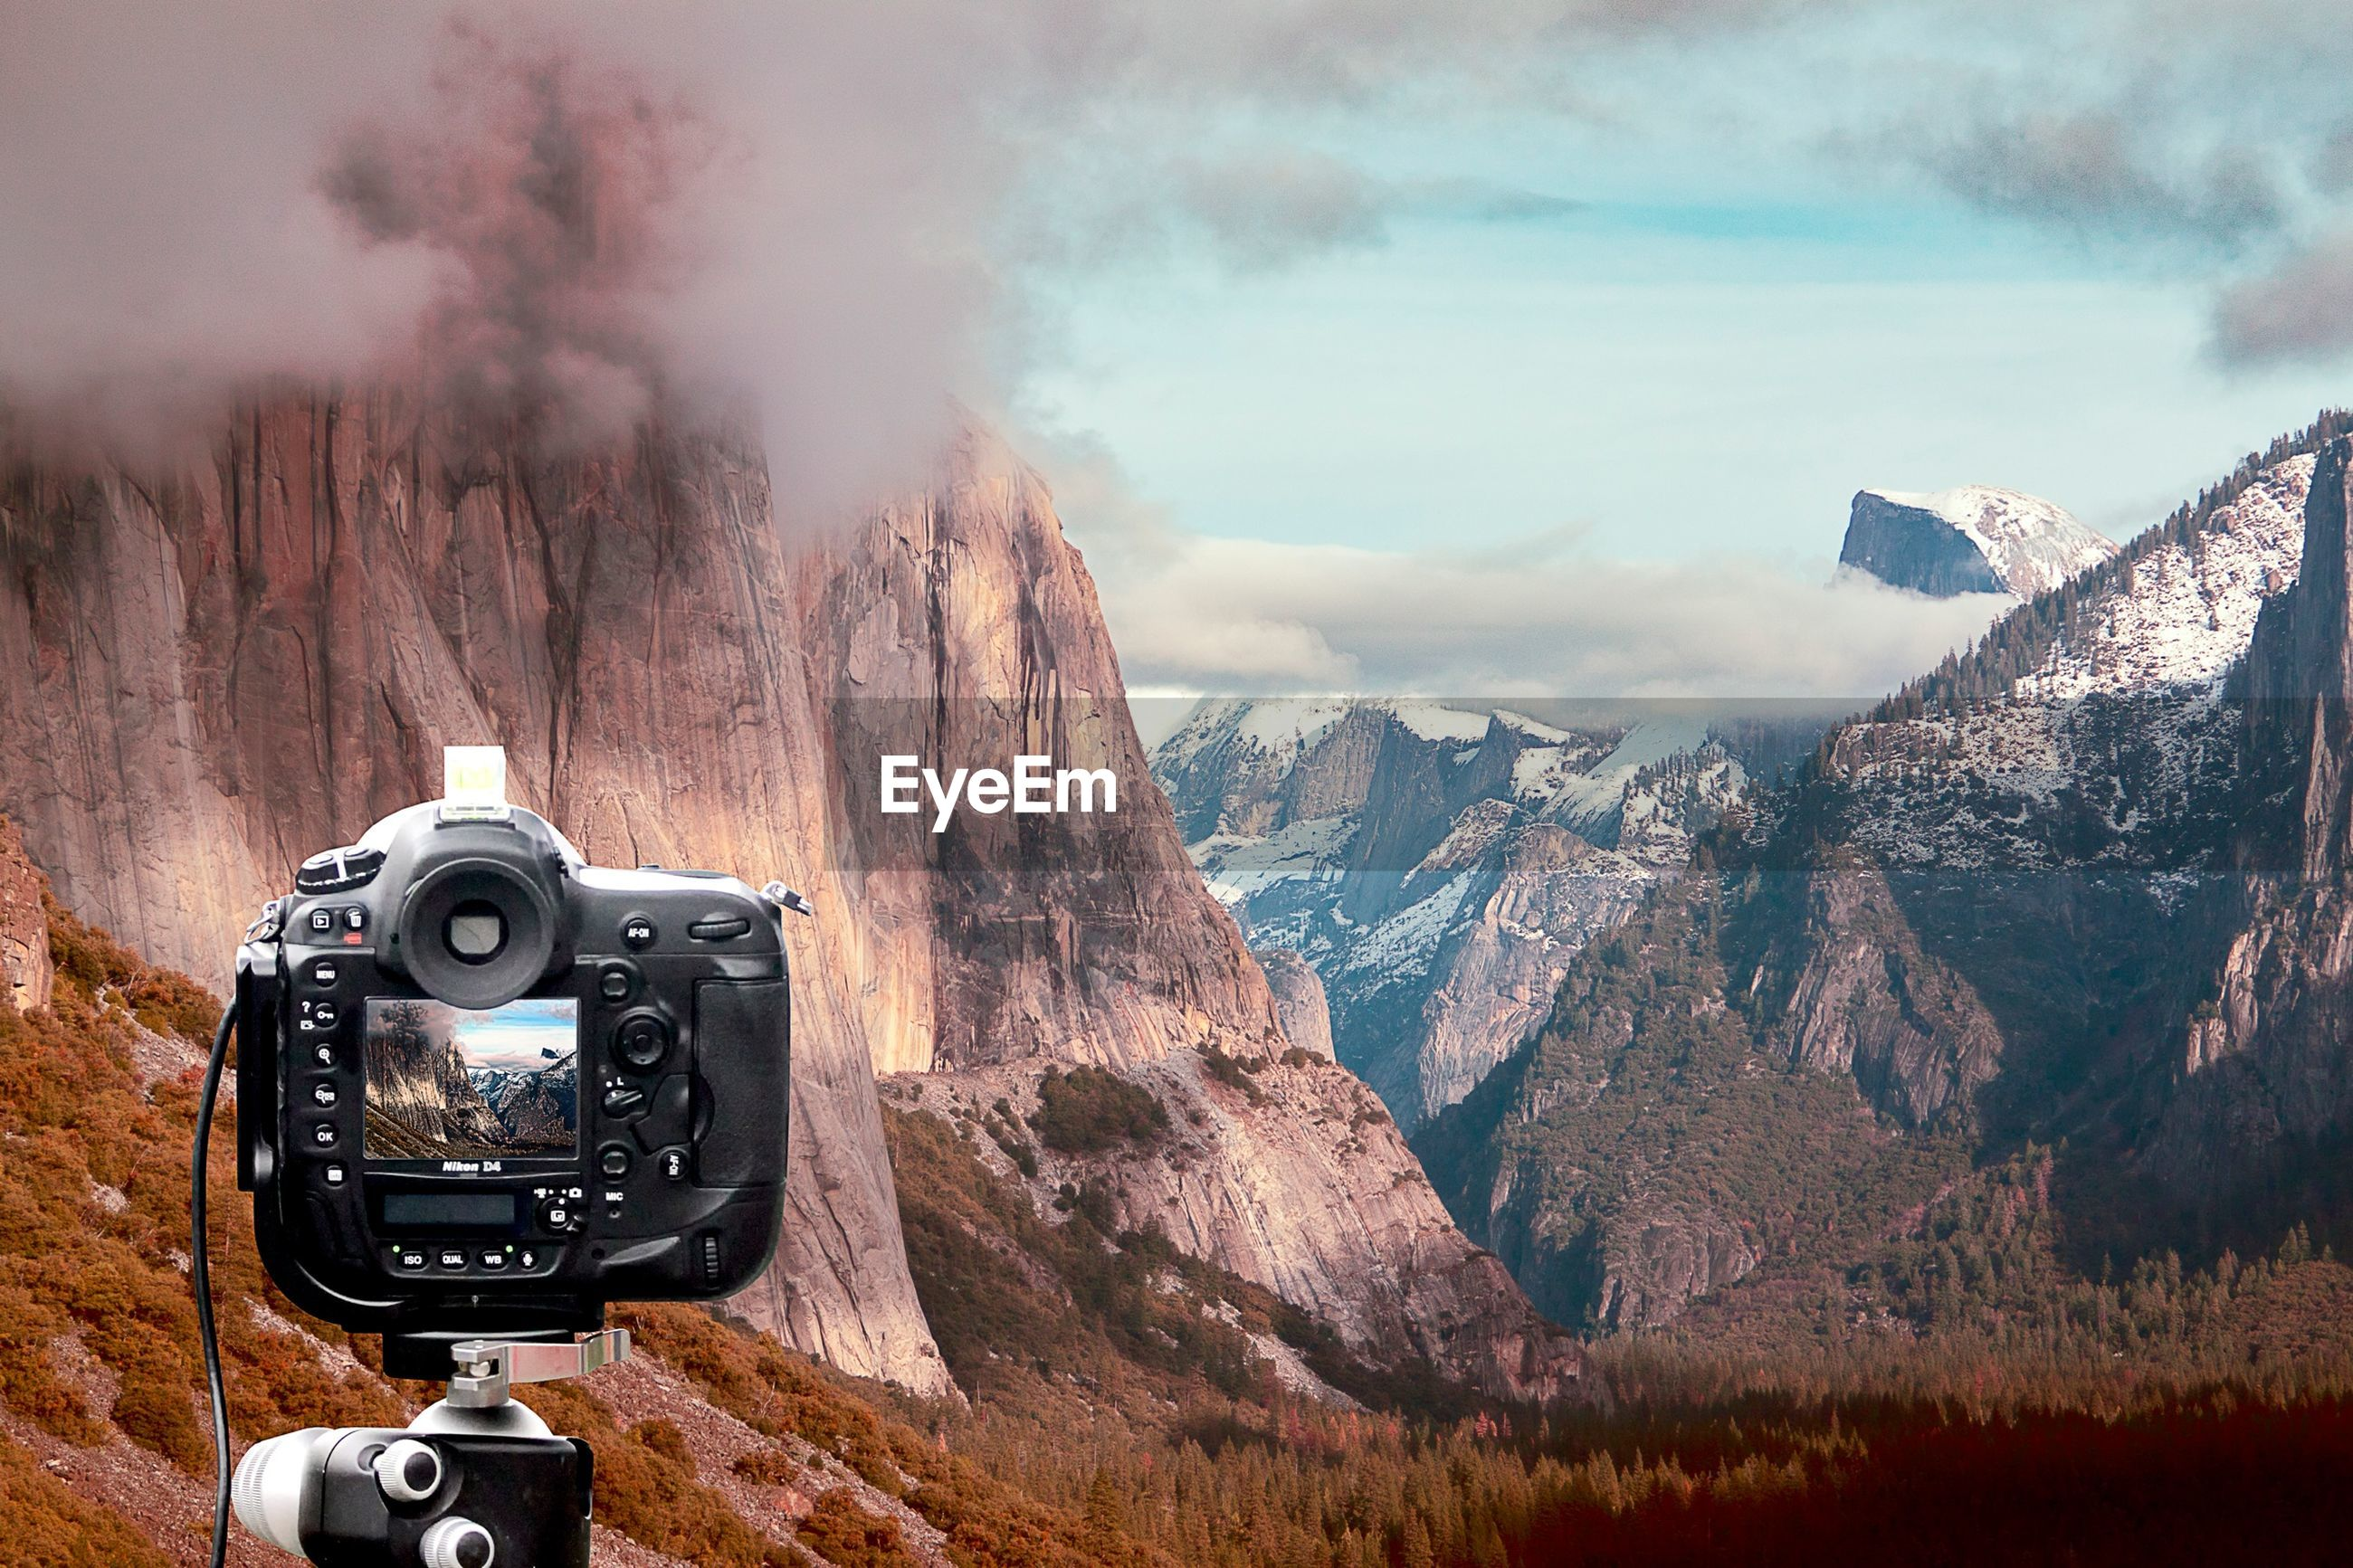 technology, photography themes, camera - photographic equipment, communication, mountain, photographing, digital camera, wireless technology, retro styled, sky, car, travel, old-fashioned, land vehicle, part of, transportation, smart phone, landscape